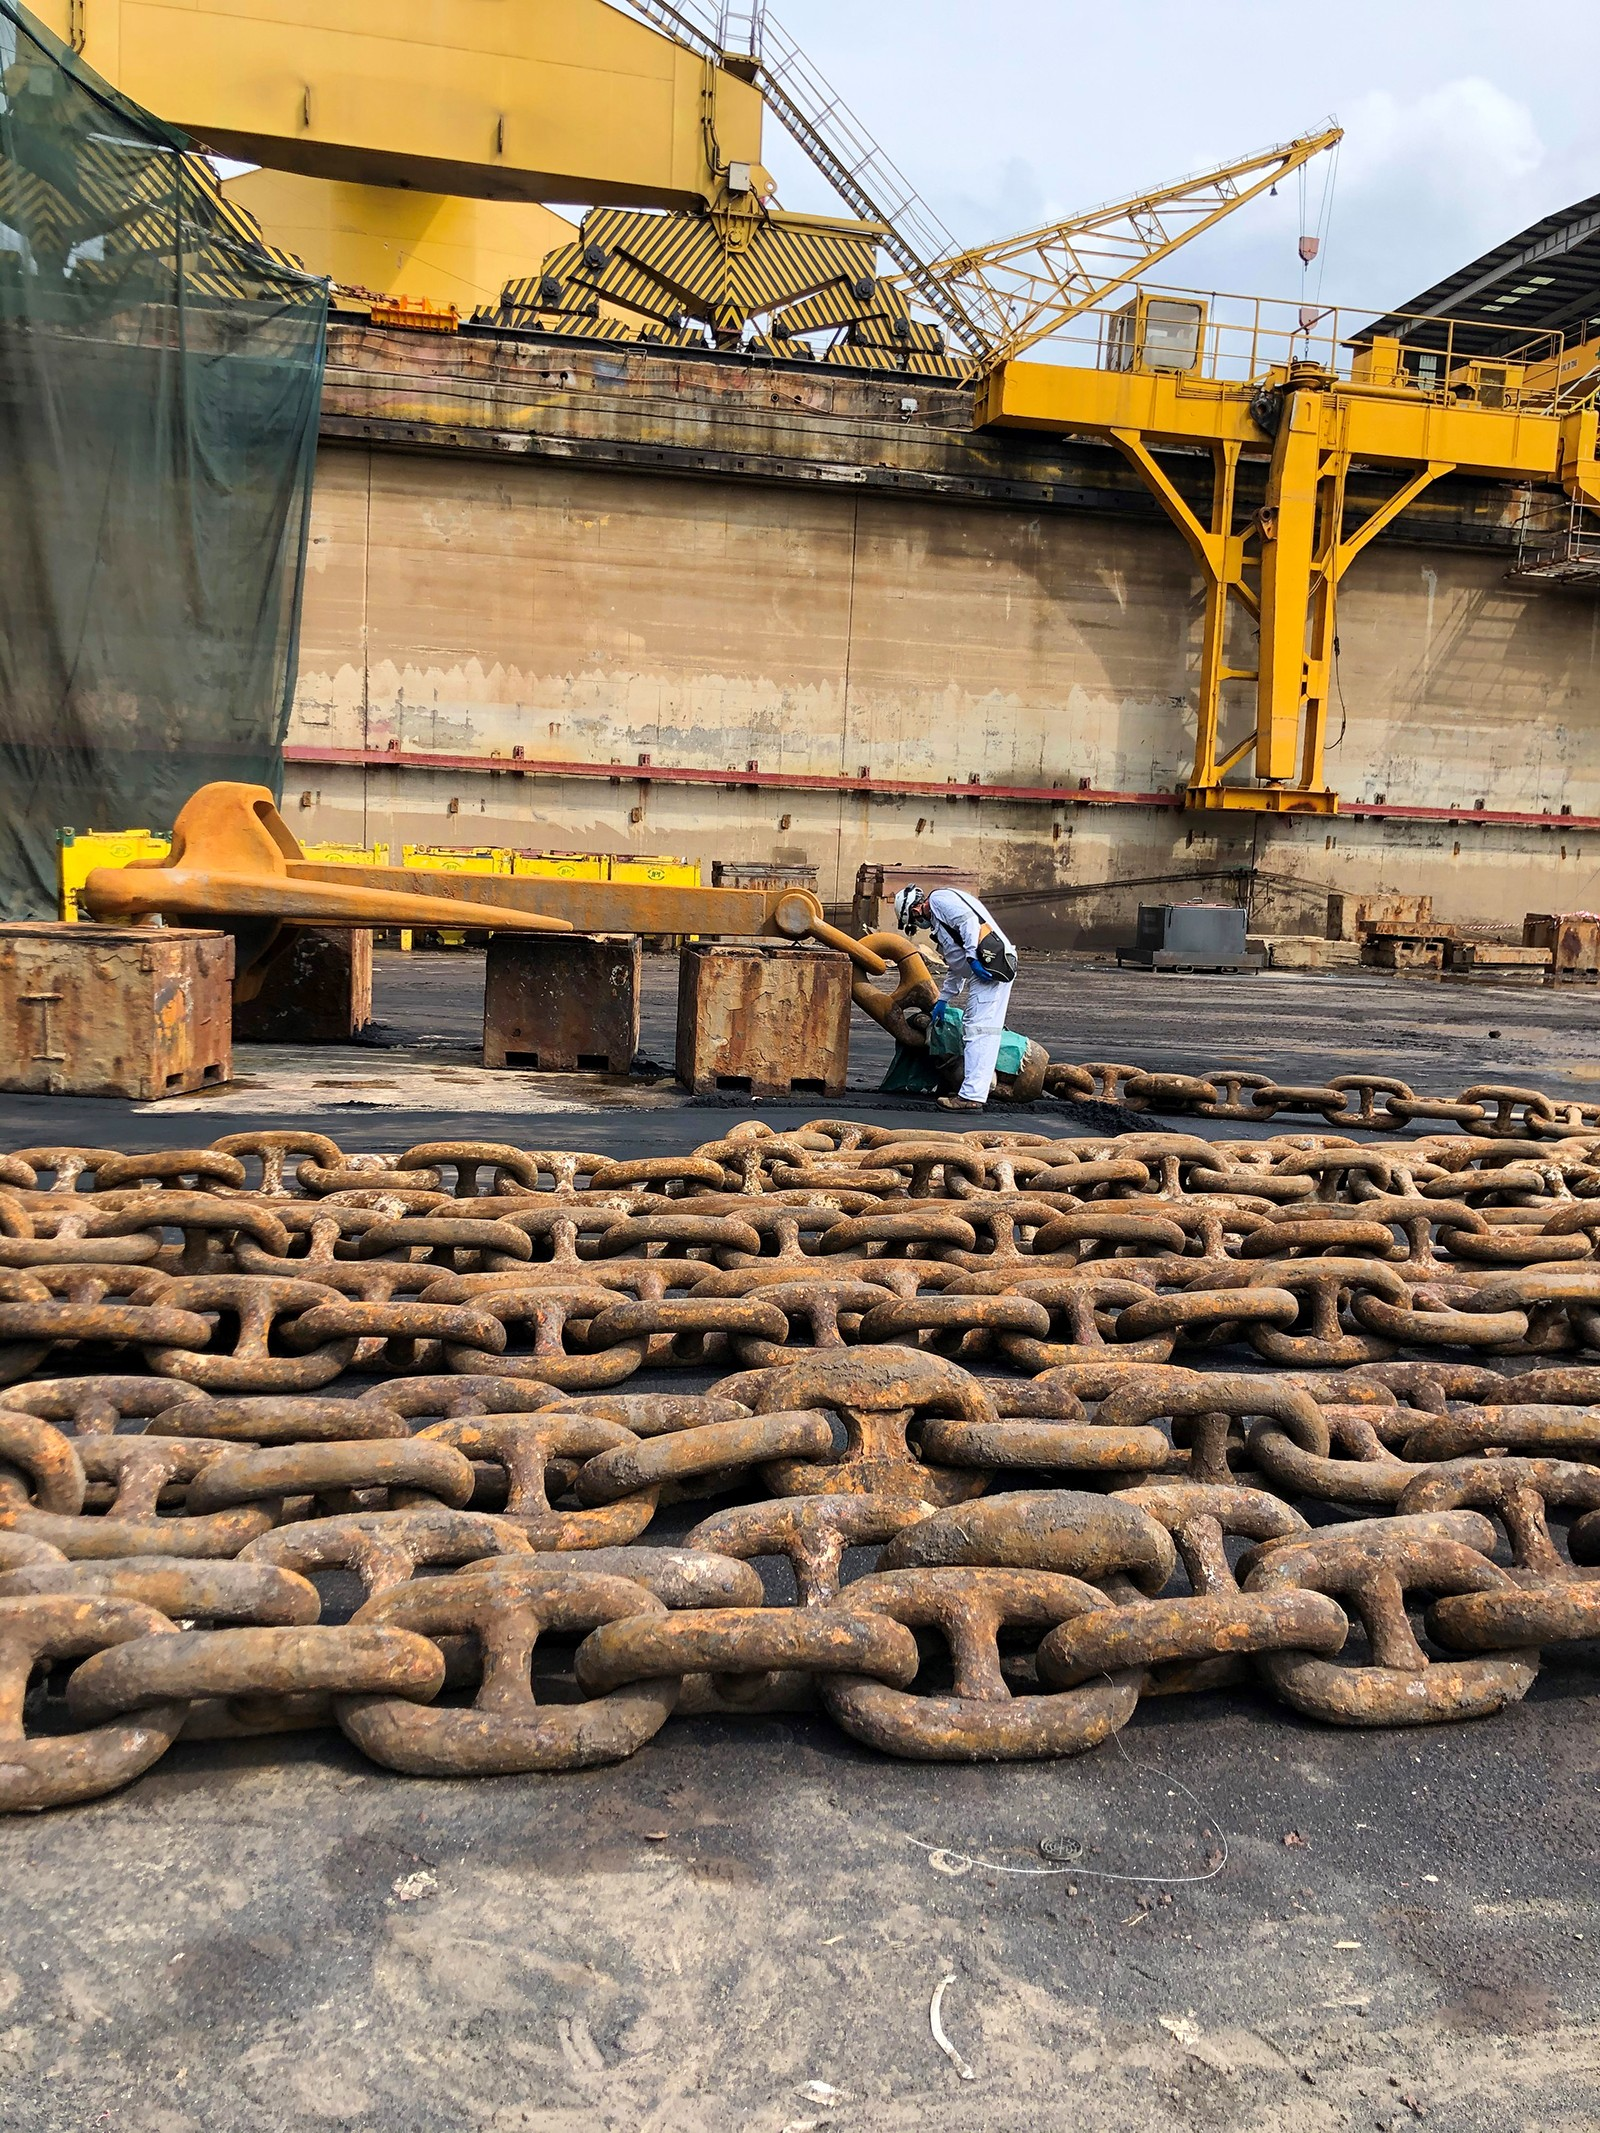 Person examines anchor, which is on blocks on the ships deck. Rows of anchor's large chain in foreground.